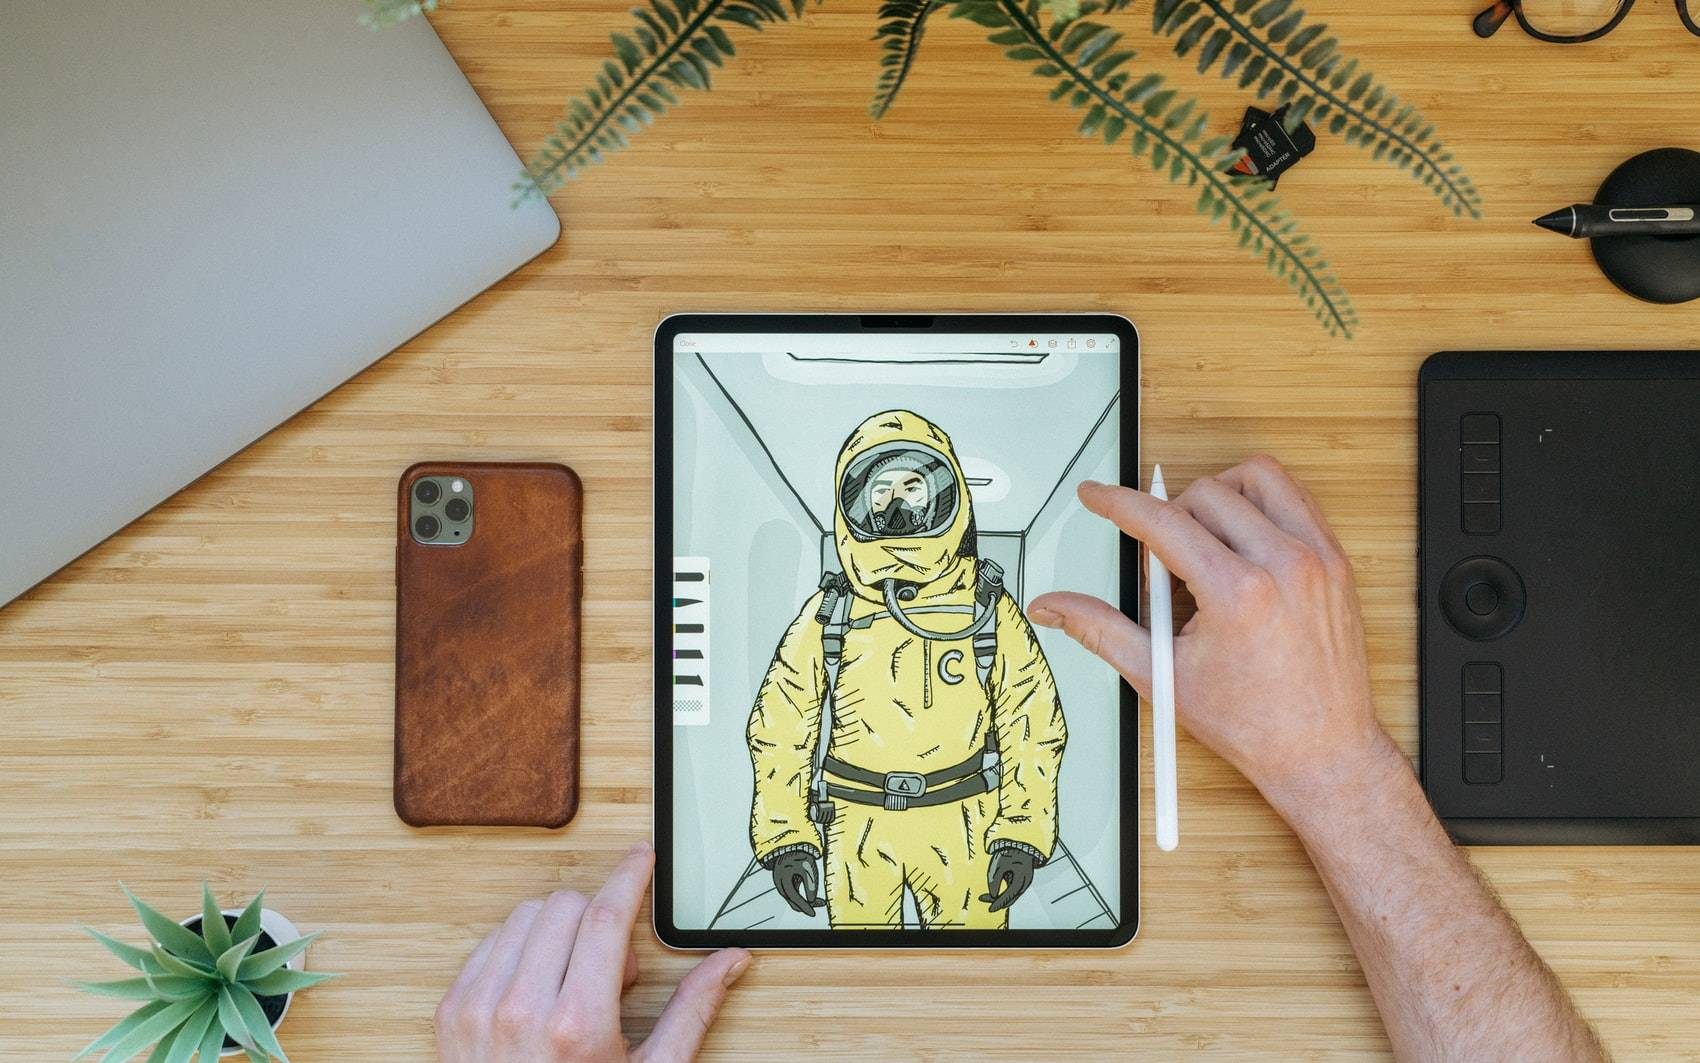 Best iPad Accessories & Apps - Apps for drawing